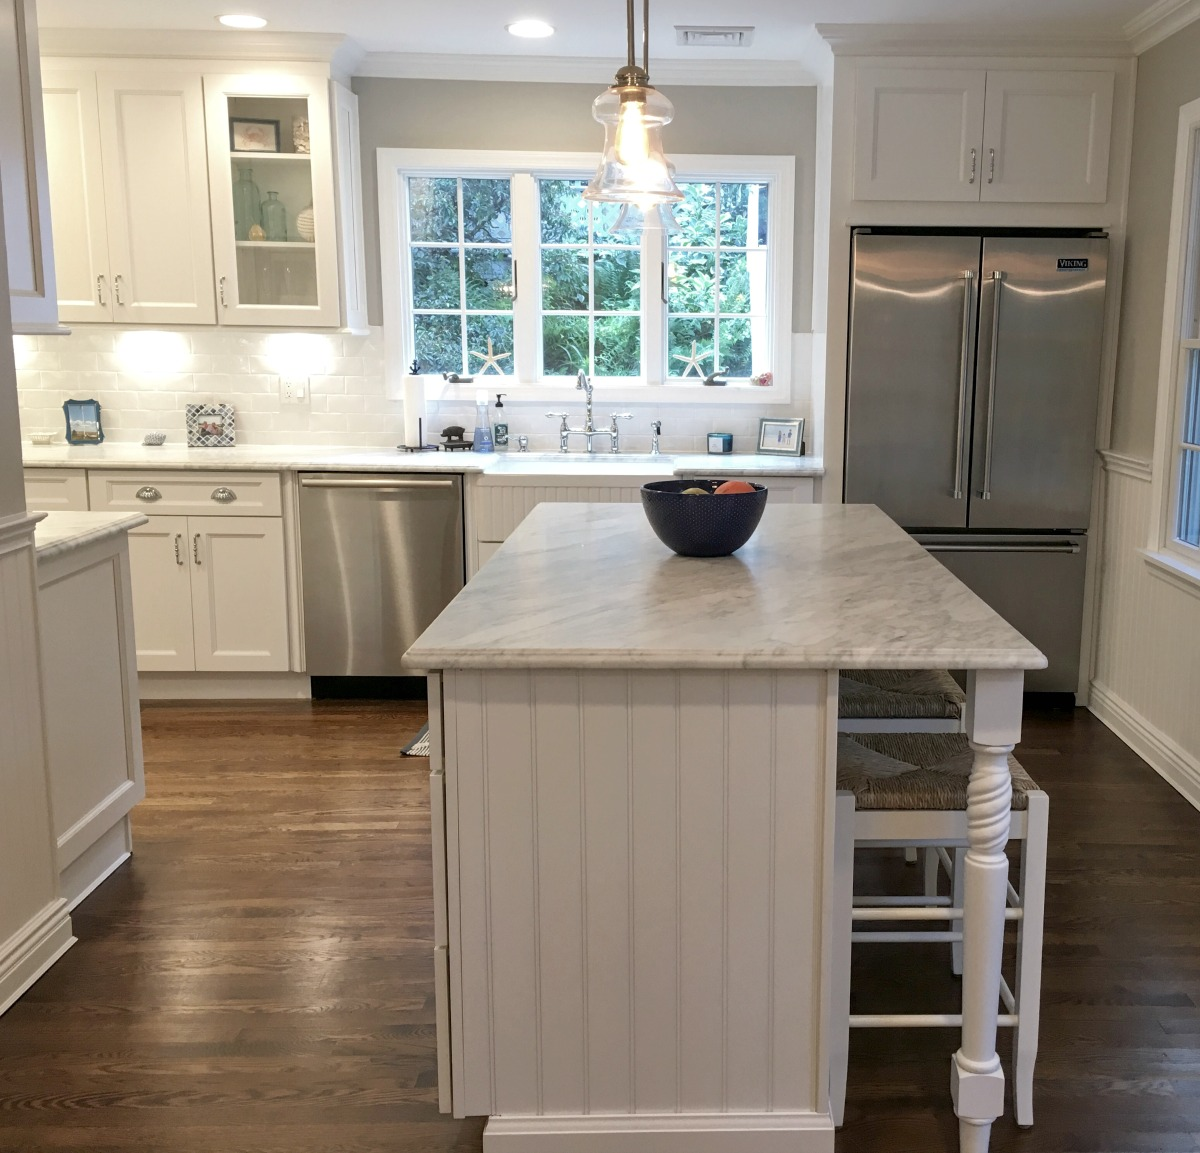 Kitchen Stores: Providence White Pre-Assembled Kitchen Cabinets